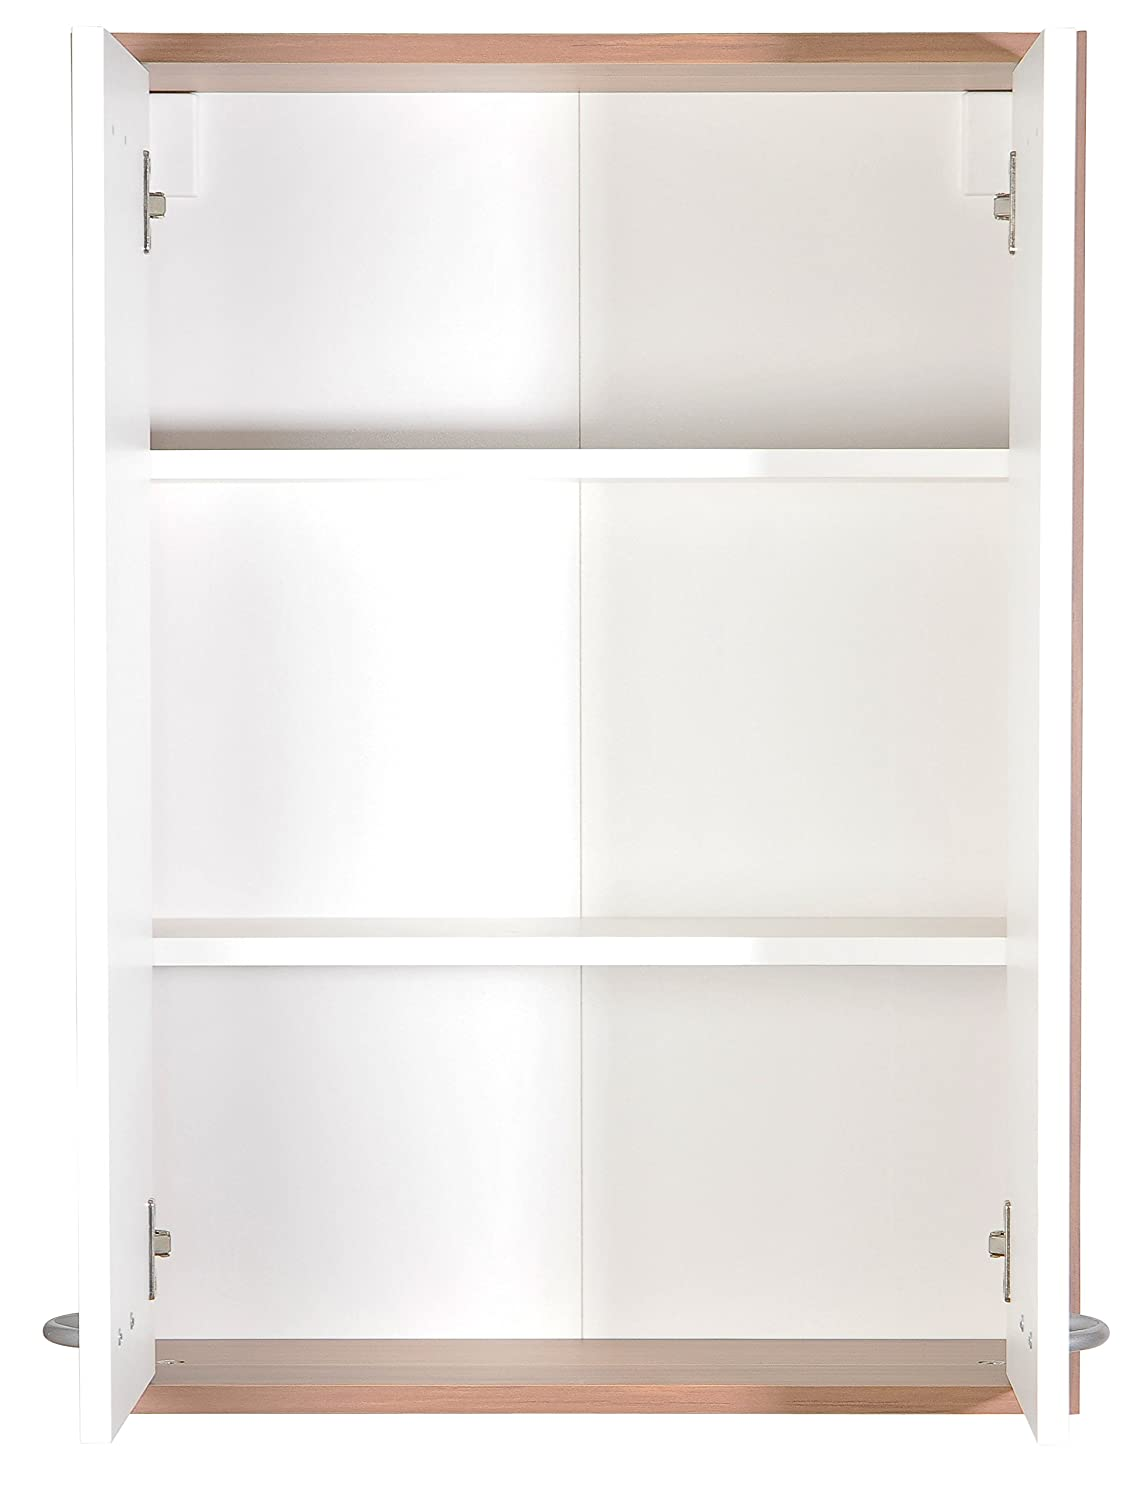 FMD Wall-Mounted Cabinet Madrid 4 Approximately 52.5 x 72 x 19 cm Plumtree and White FMD Möbel 901-004